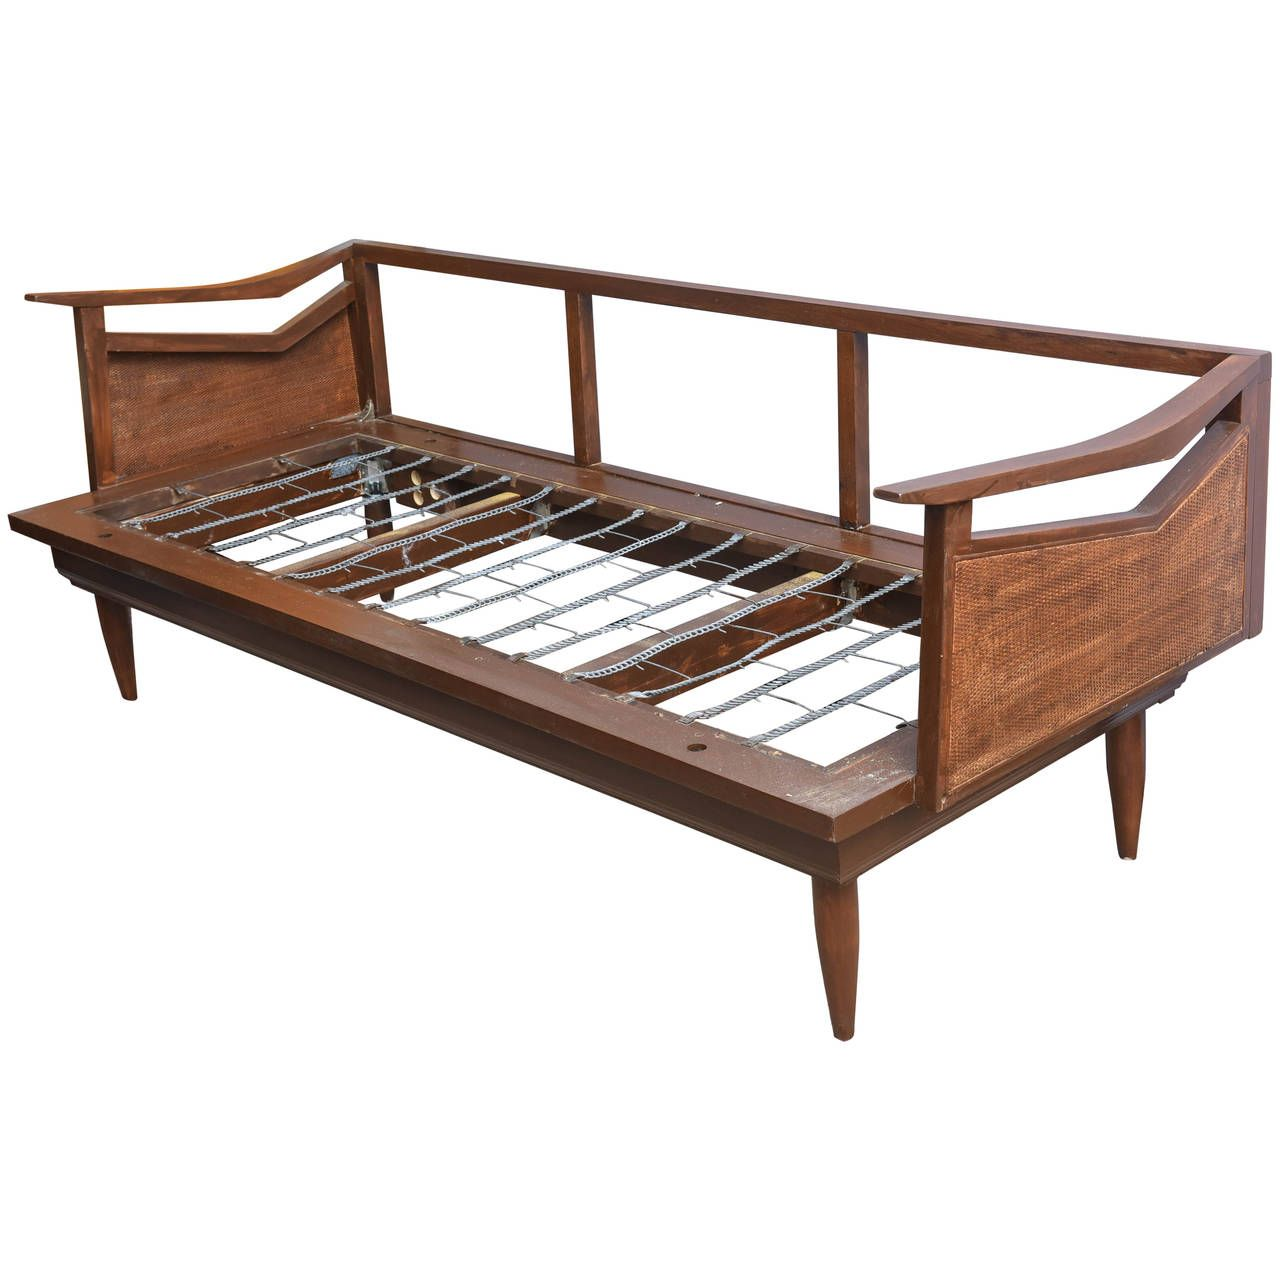 Day Beds For Sale Restored Danish Teak And Cane Day Bed Attributed To Wegner 1960s